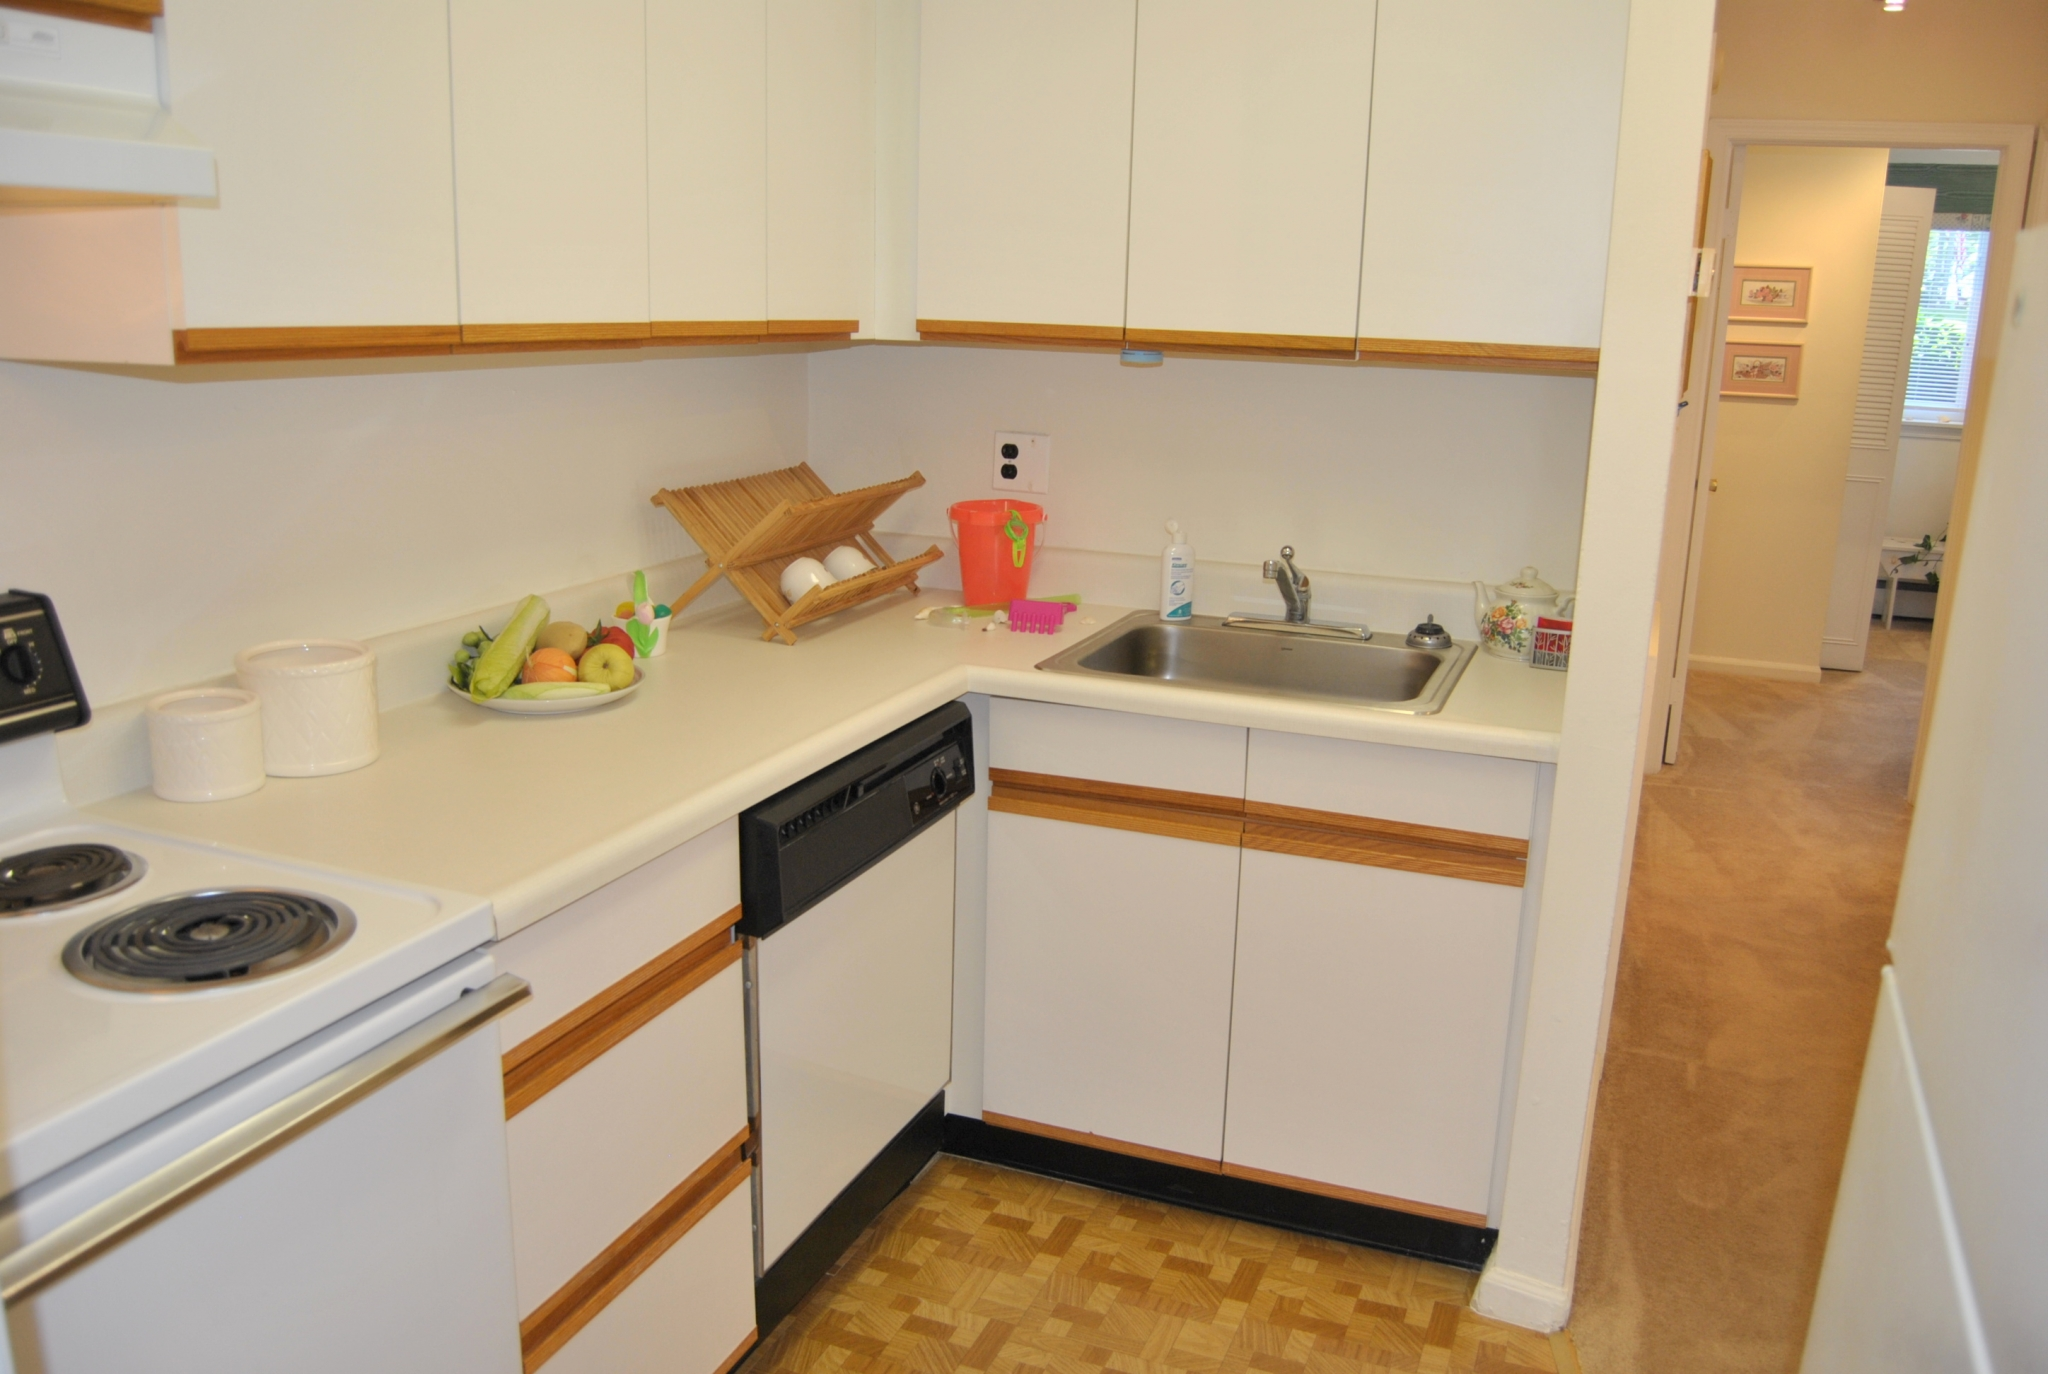 Elegant Kitchen | Apartments in Media, PA | Rosetree Crossing Apartments